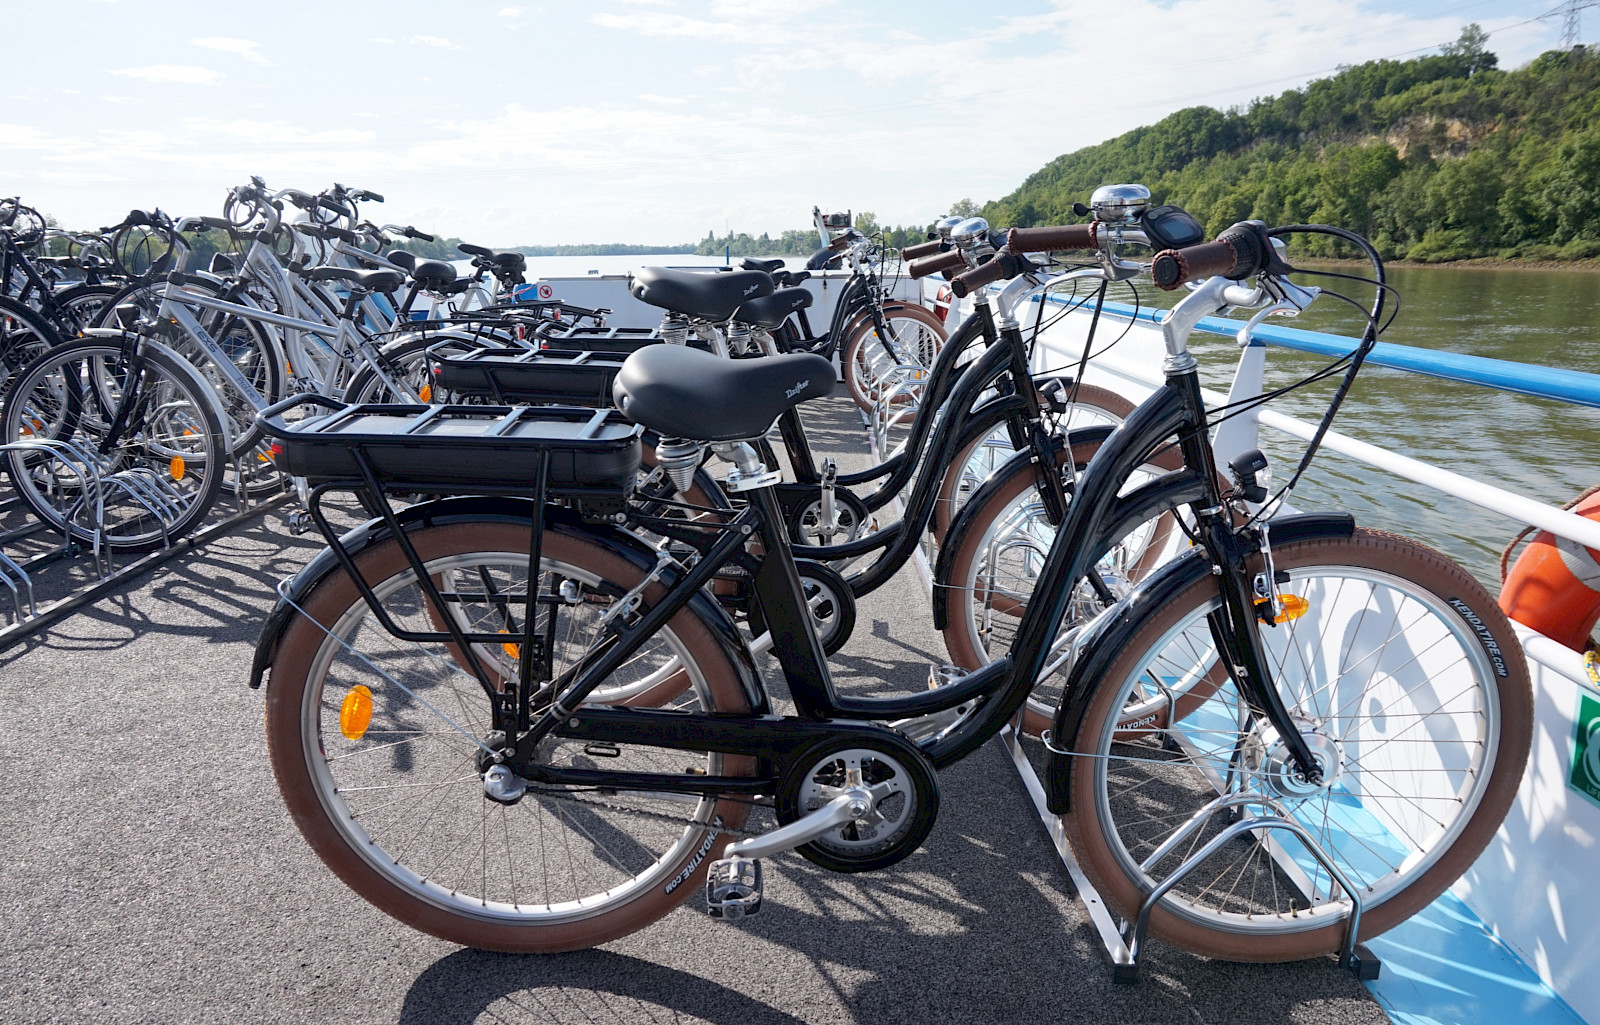 Storing Bikes On Boats: Barge/Boat For Bike Tours